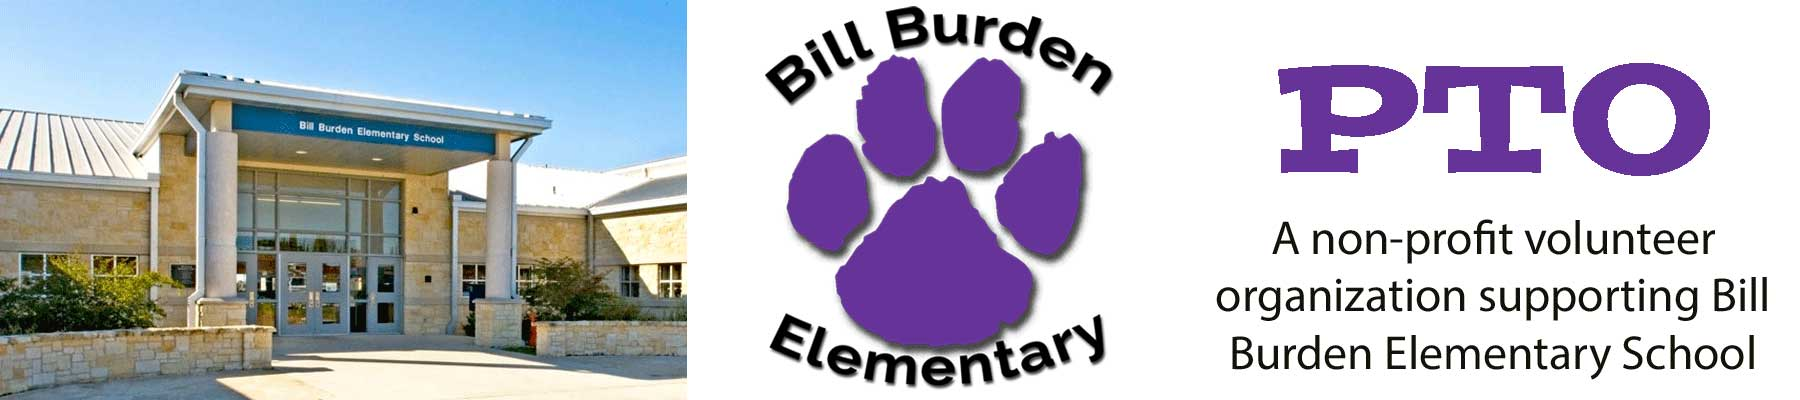 Bill Burden Elementary School Parent Teacher Organization – Liberty Hill, Texas header image